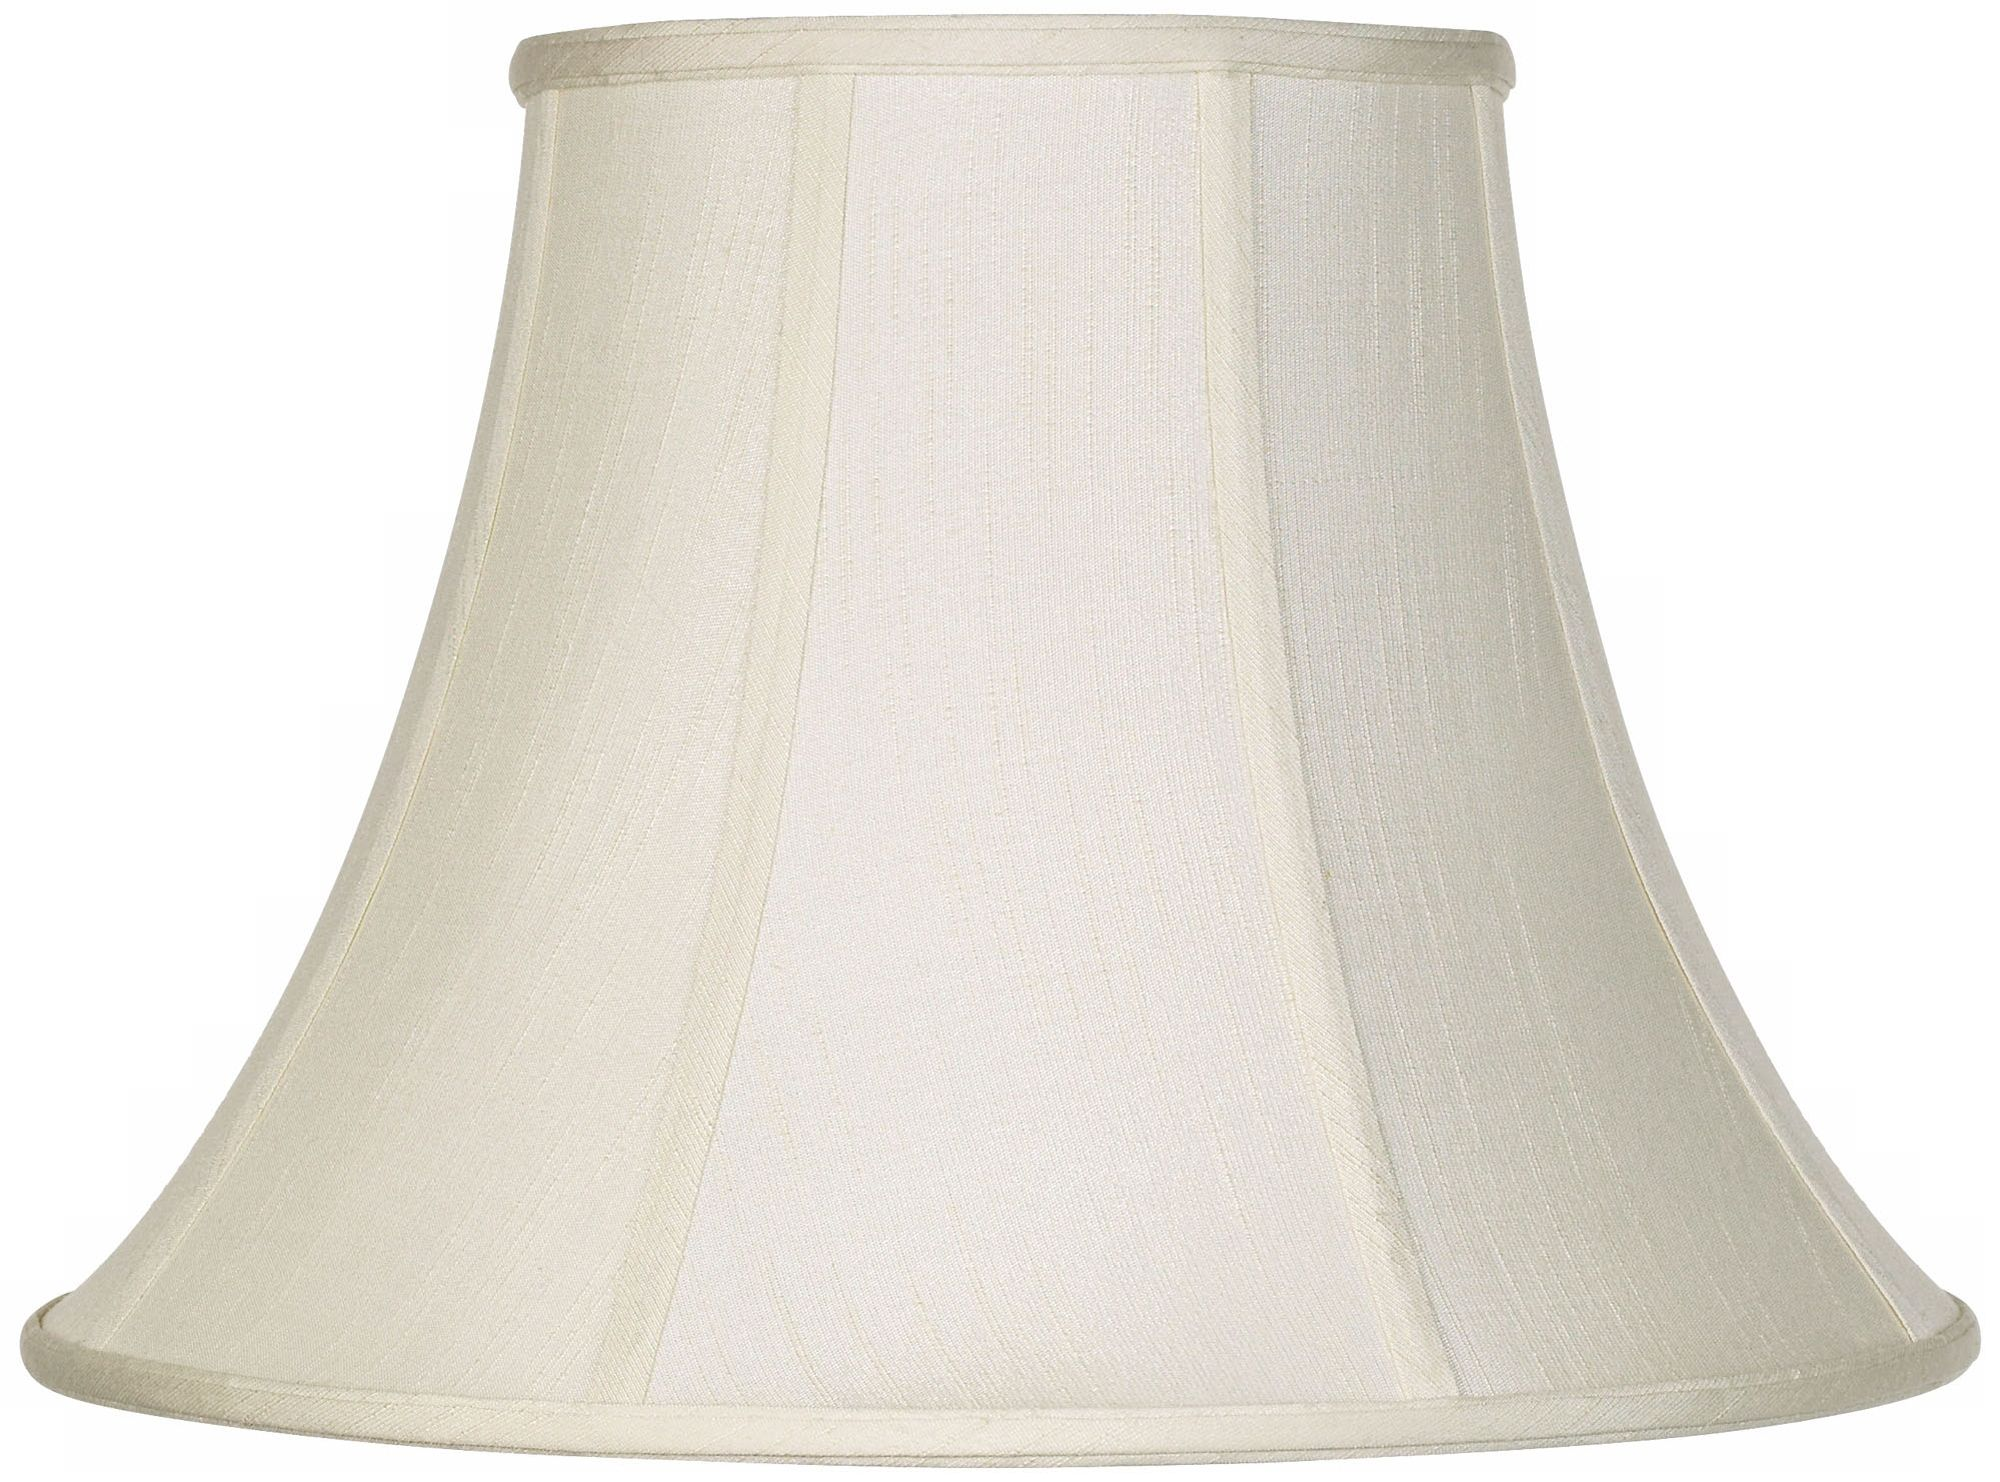 creme bell lamp shade 9x18x13 (spider) HOMENIU